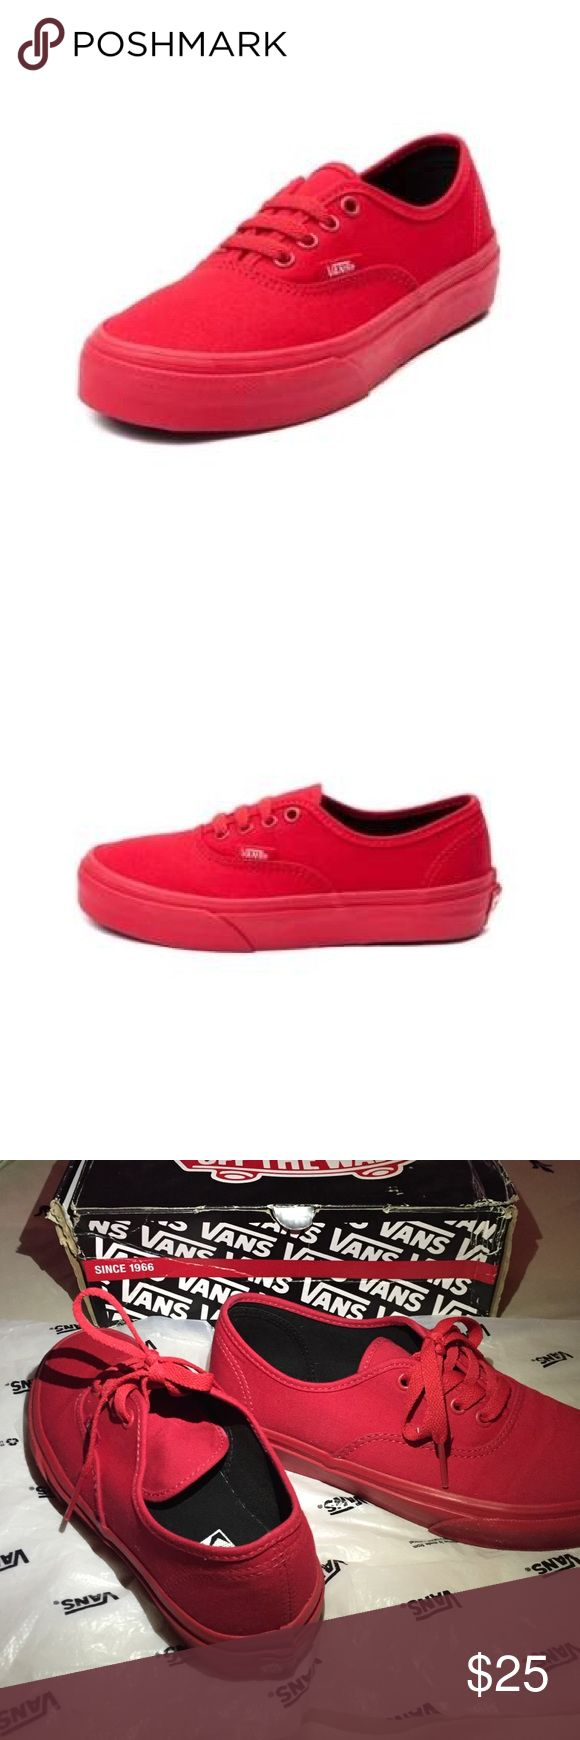 All Red VANS ✨⛄️SAME DAY SHIP- if purchased before 1:00pm Mountain time☃✨ Authentic All Red Vans! Journeys Only. Size 3kids but fits 5.5-6 Woman's. These run a little big. I usually wear a 4-4.5Kids and these fit a little loose. Worn Twice. In excellent condition. Have original box that just sit in my closet. Plz ask any questions. Vans Shoes Sneakers